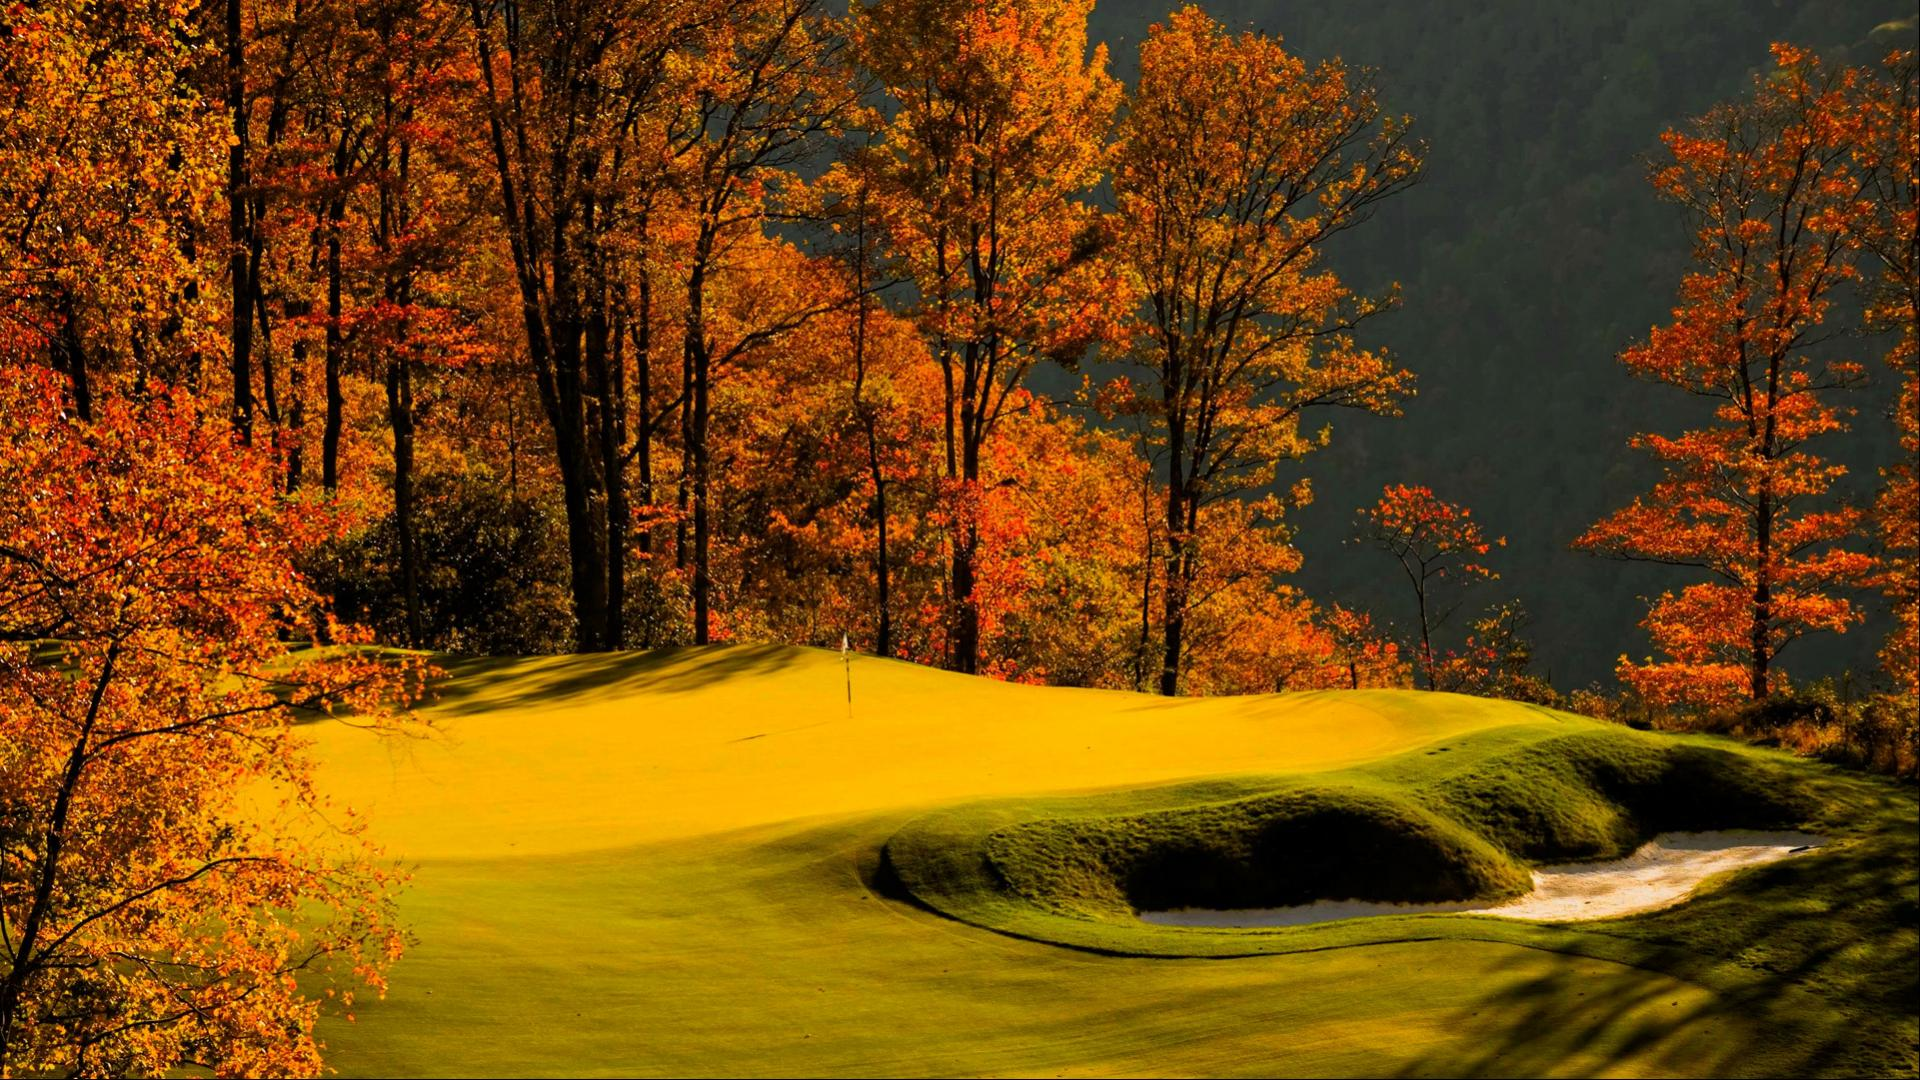 Autumn Golf Course Wallpaper In 1920x1080 Hd Wallpapers Wallpapers Download High Resolution Wallpapers